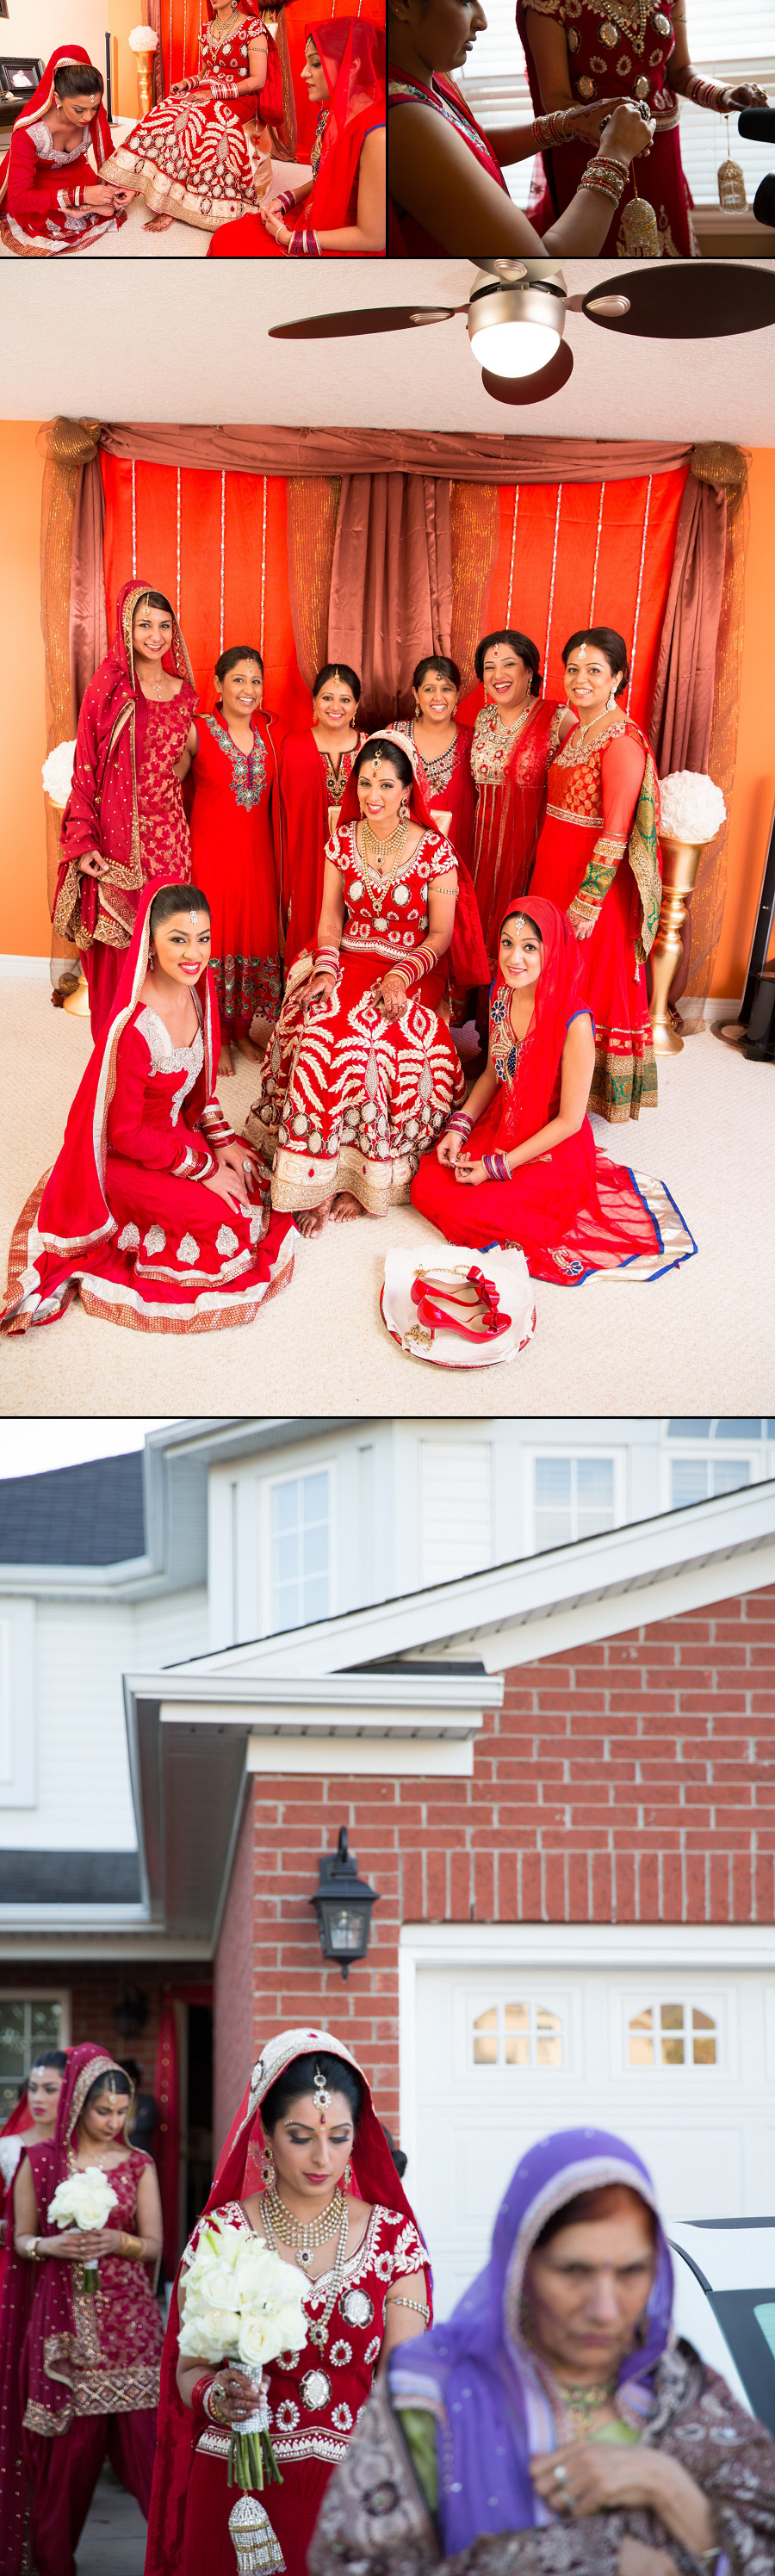 002_Sikh_Wedding_Photographer